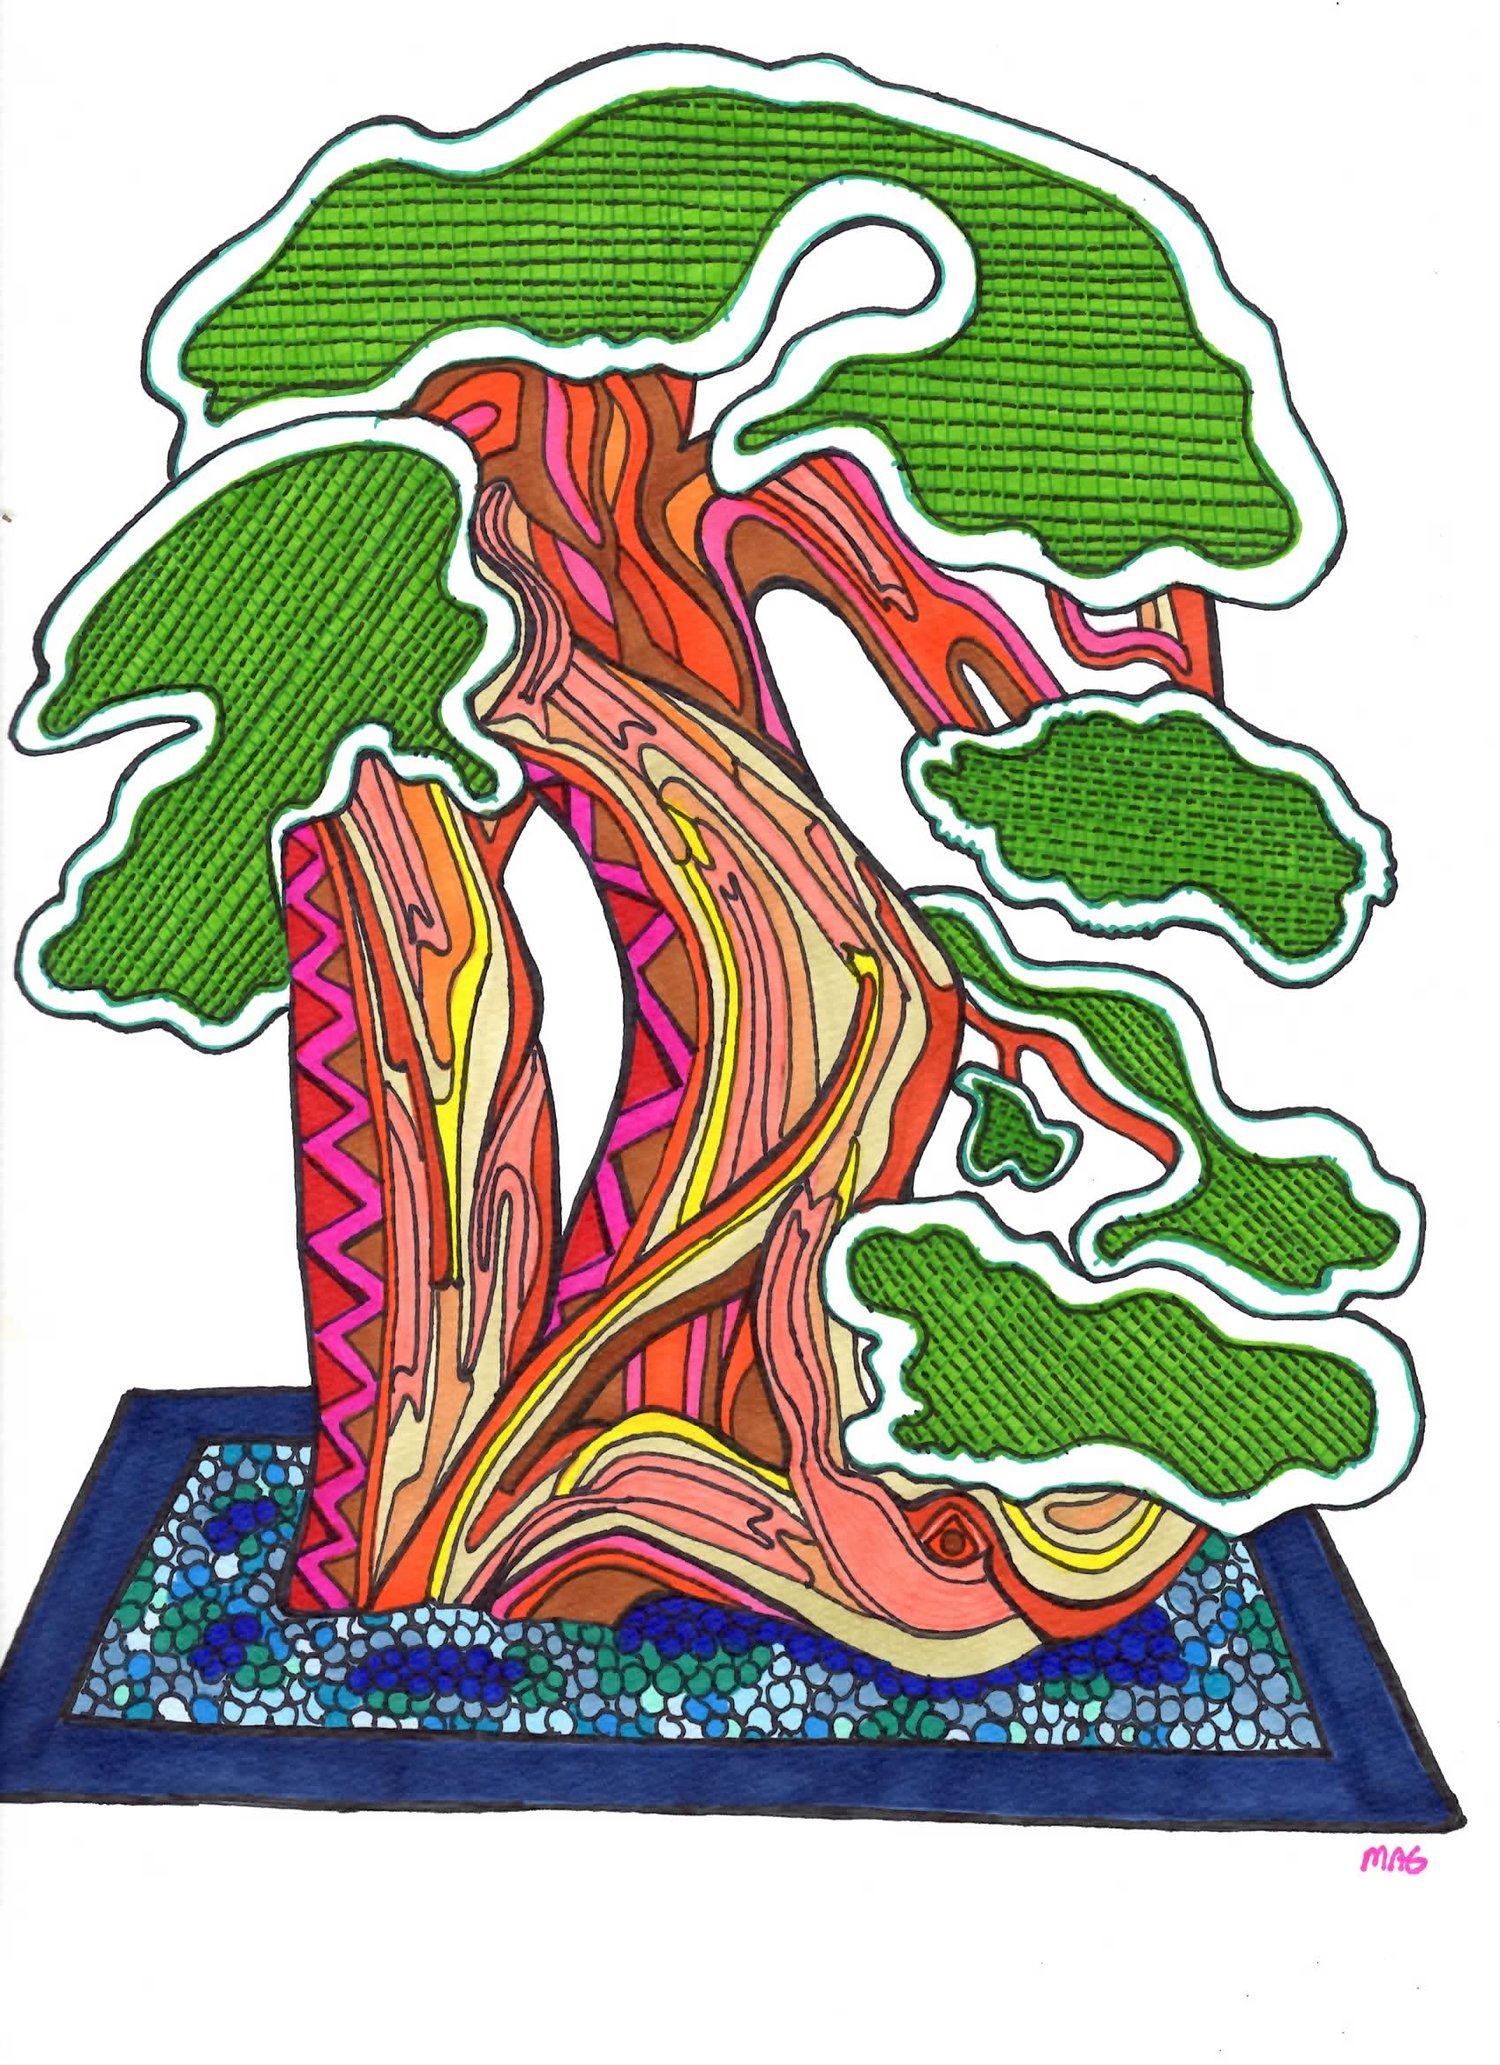 Bonsai 1 (sold)